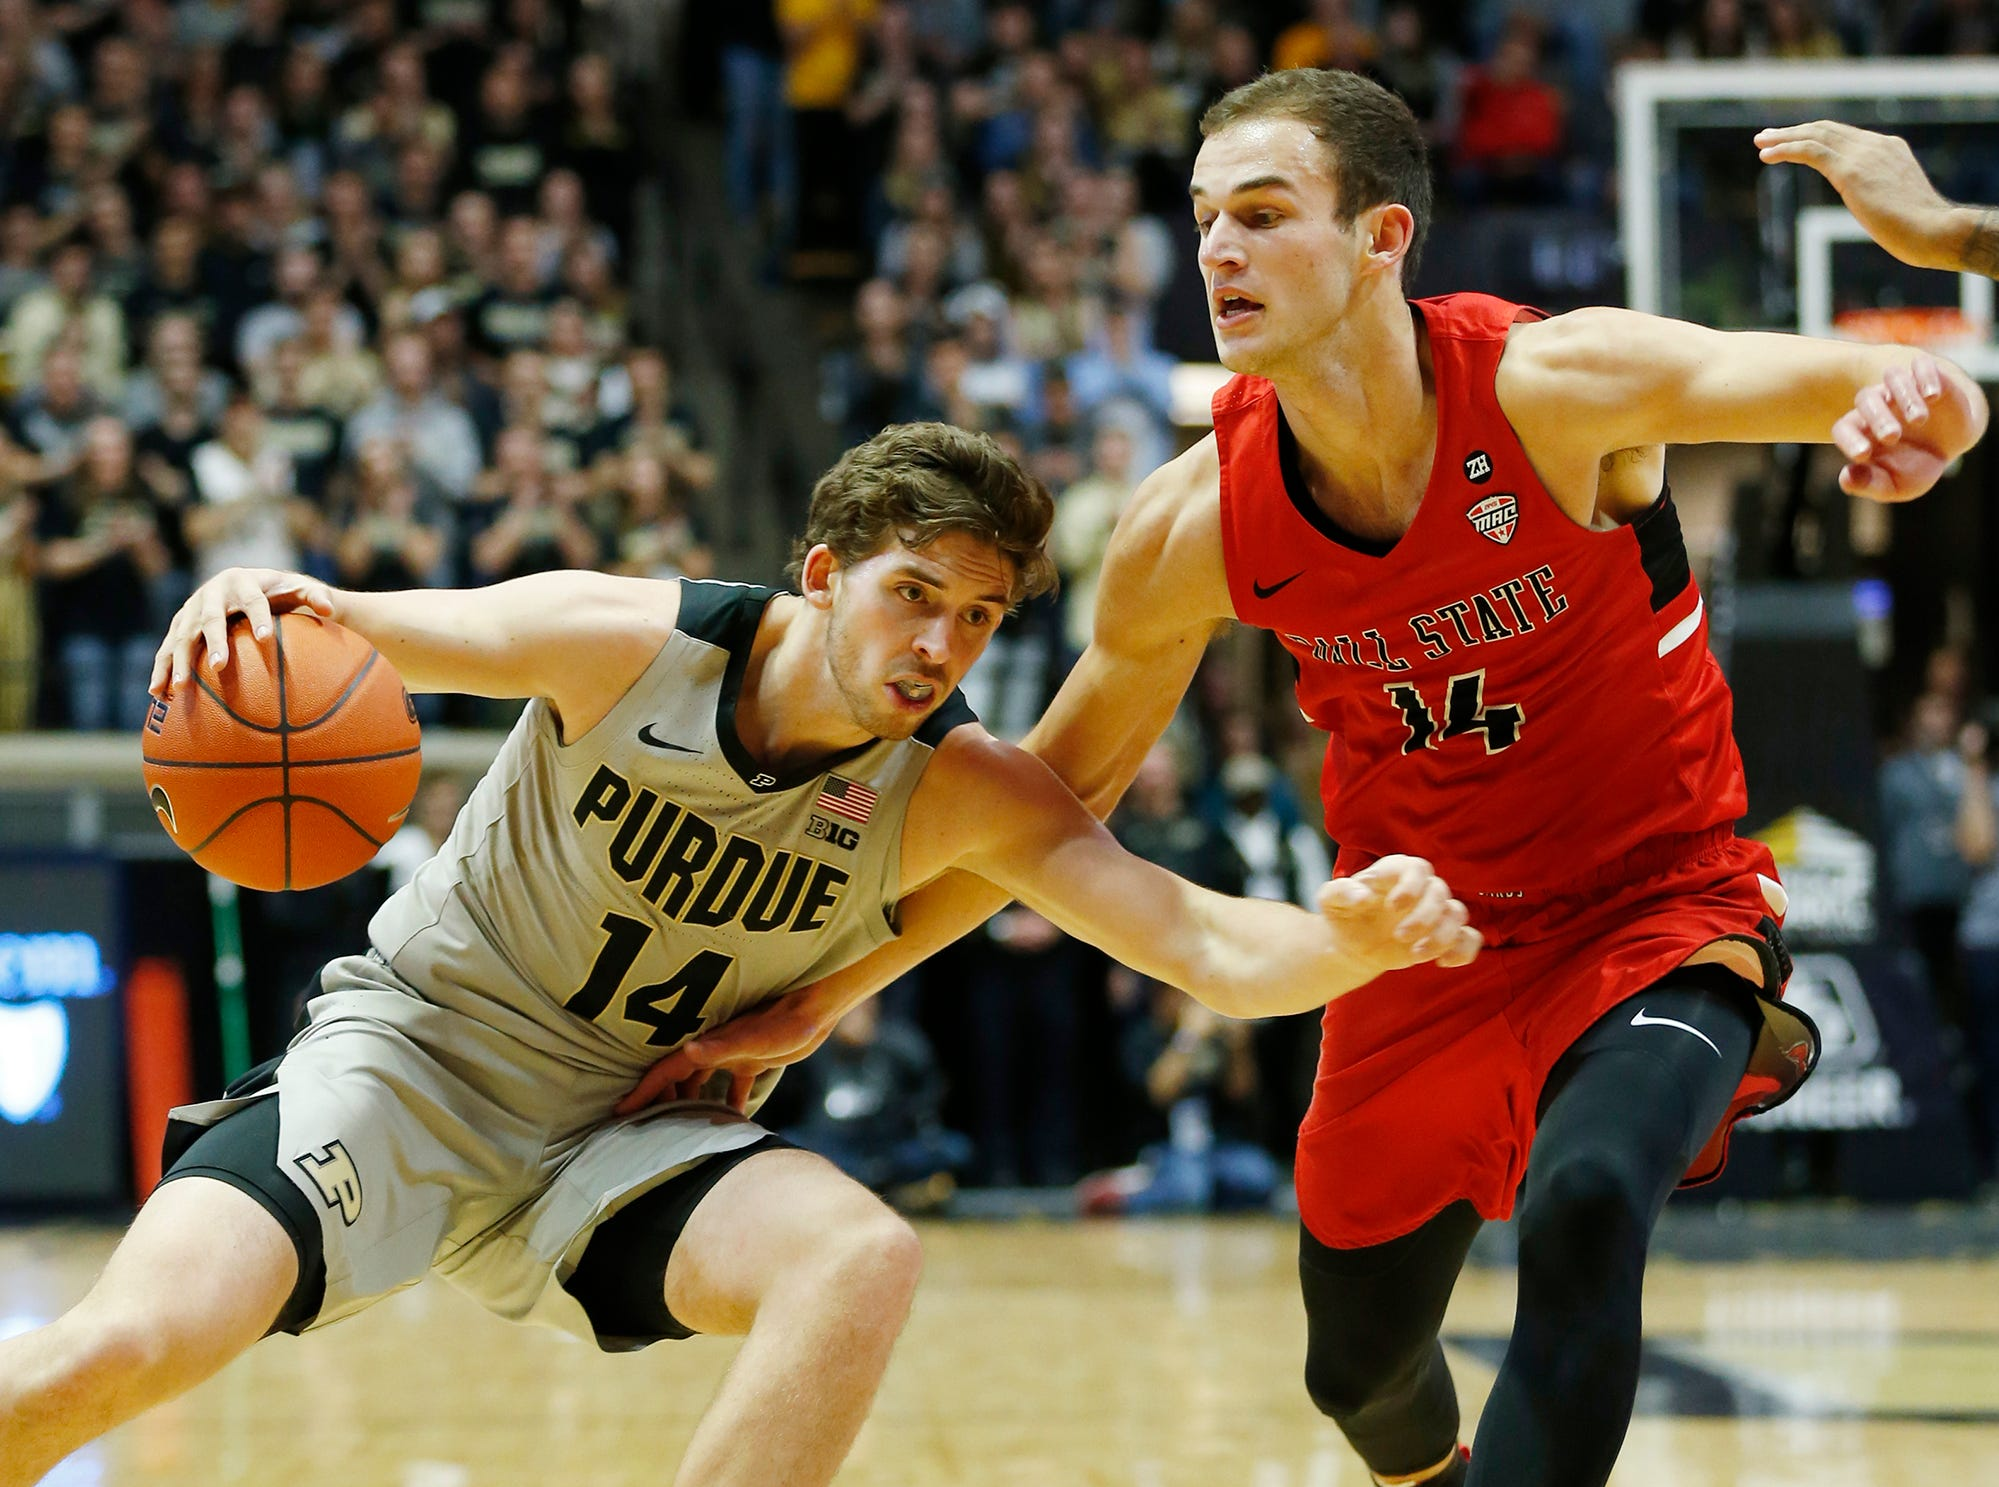 Ryan Cline of Purdue tries to slip beneath Kyle Mallers of Ball State Saturday, November 10, 2018, at Mackey Arena. Purdue defeated Ball State 84-75.